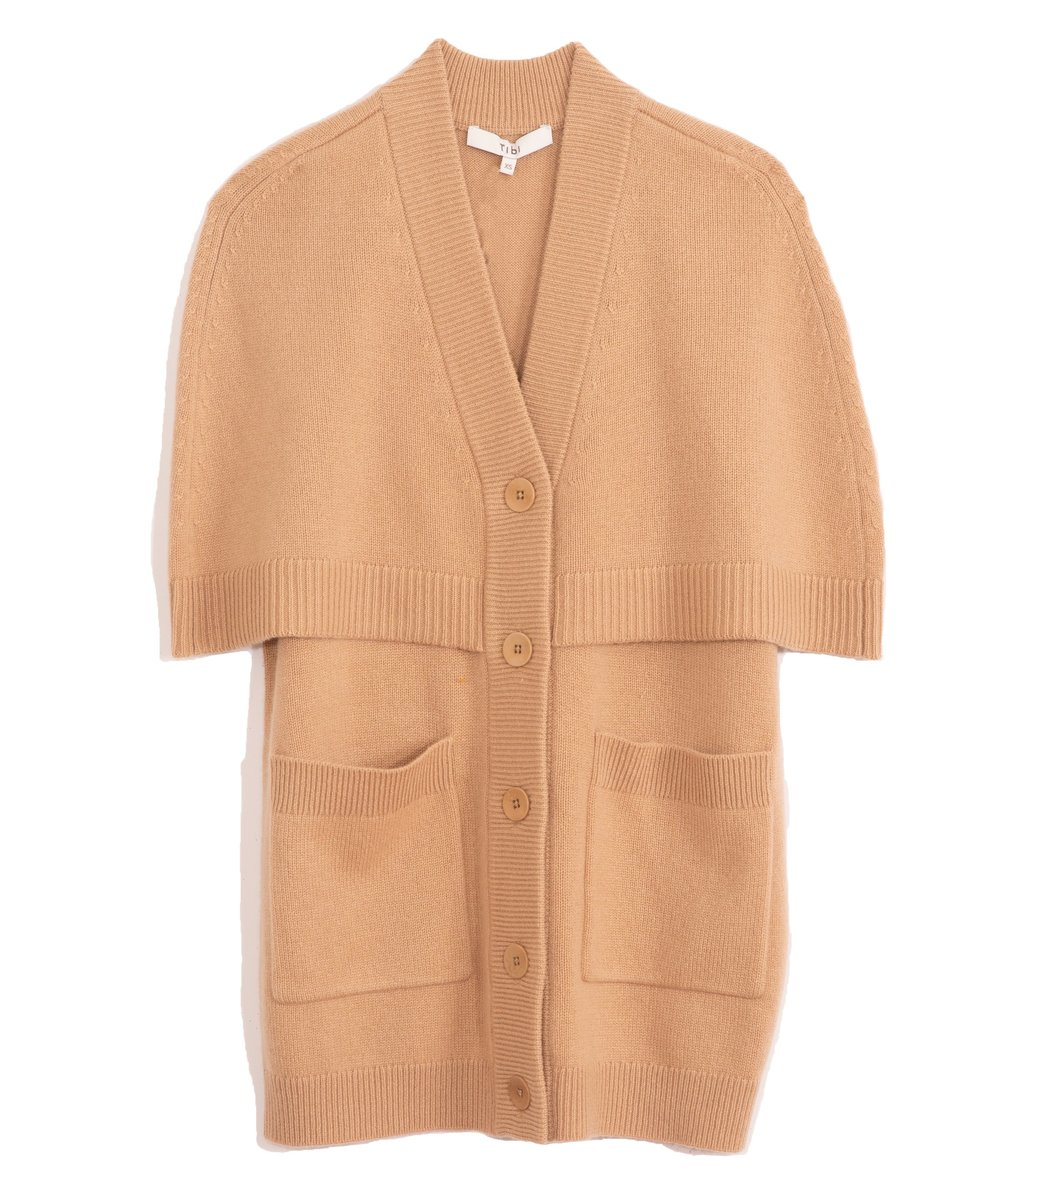 TIBI Spring Cashmere Cocoon Cape Cardigan in Taffy